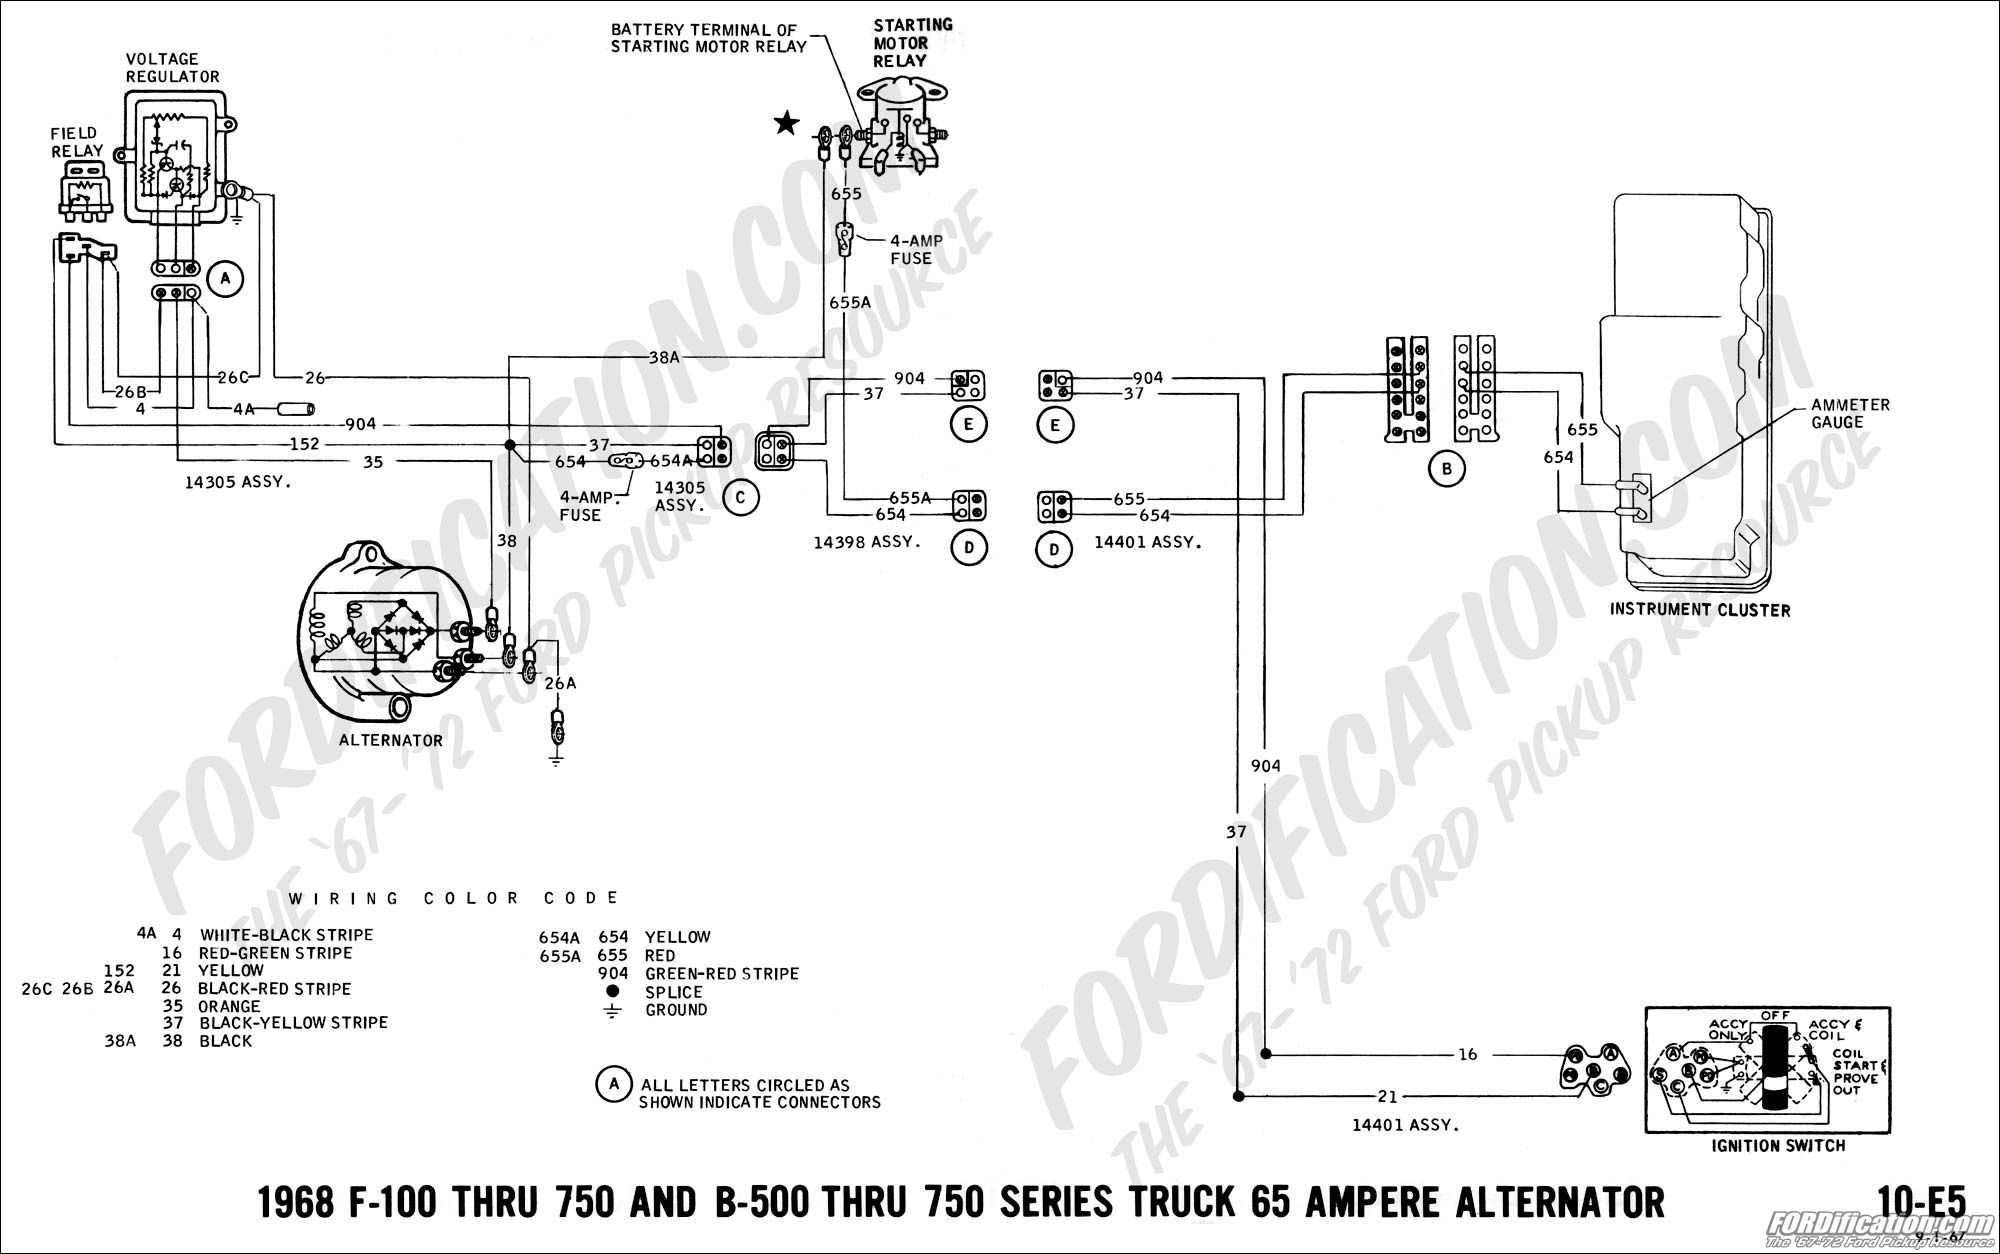 68 ford alternator wiring diagram 76 ford f150 pinterest rh pinterest com 1965 Ford Alternator Wiring Diagram Ford Alternator Wiring Harness